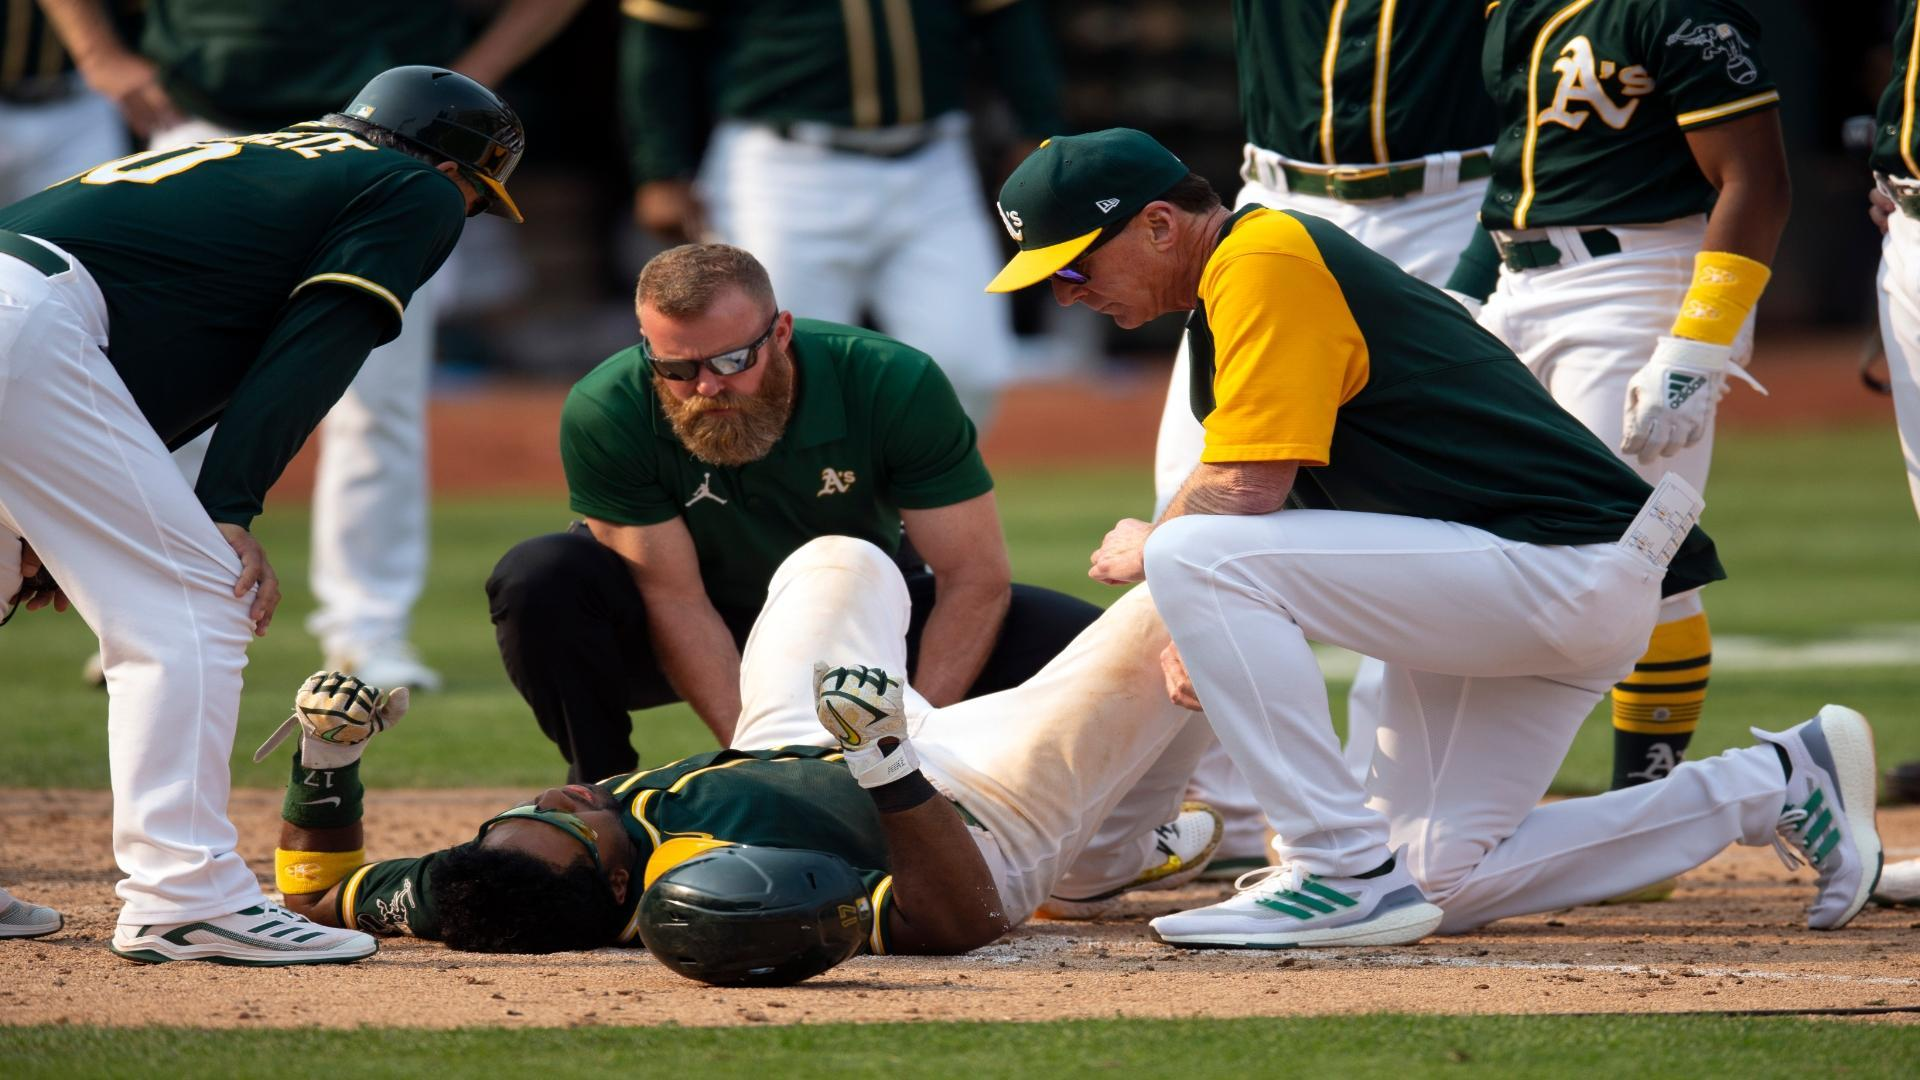 Elvis Andrus scores walk-off run for A's, suffers leg injury